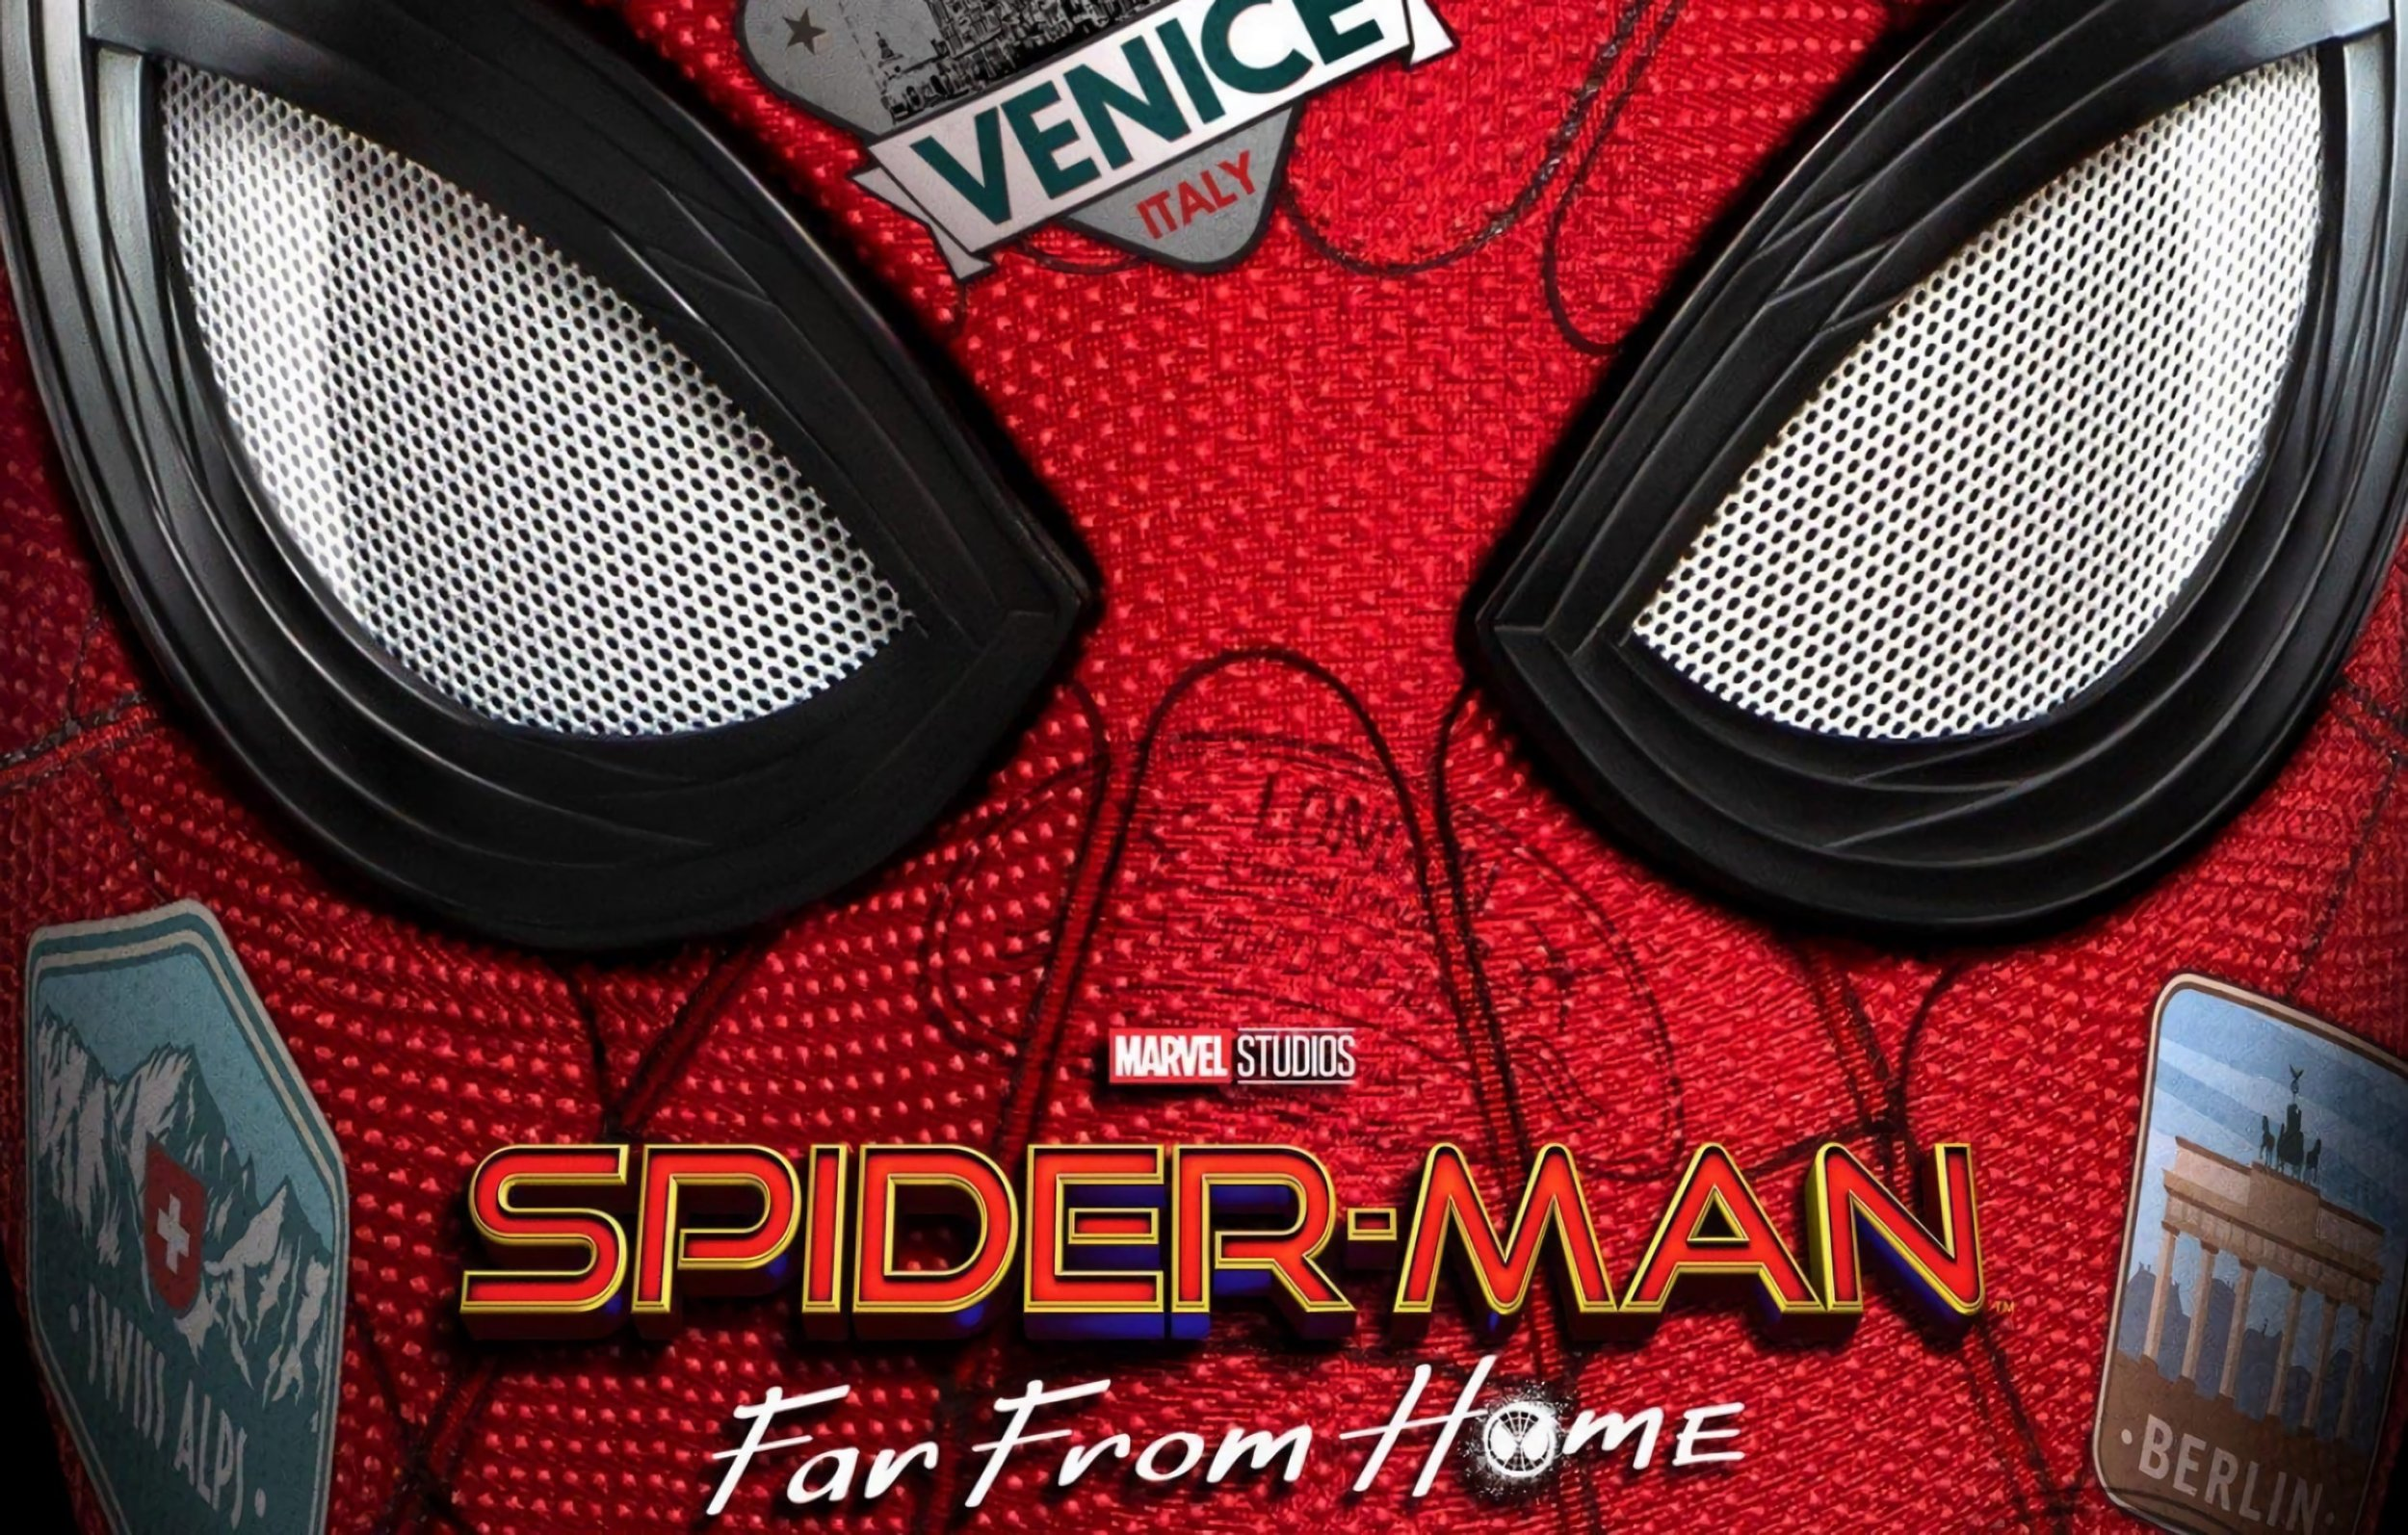 Spider-man Far from Home photo